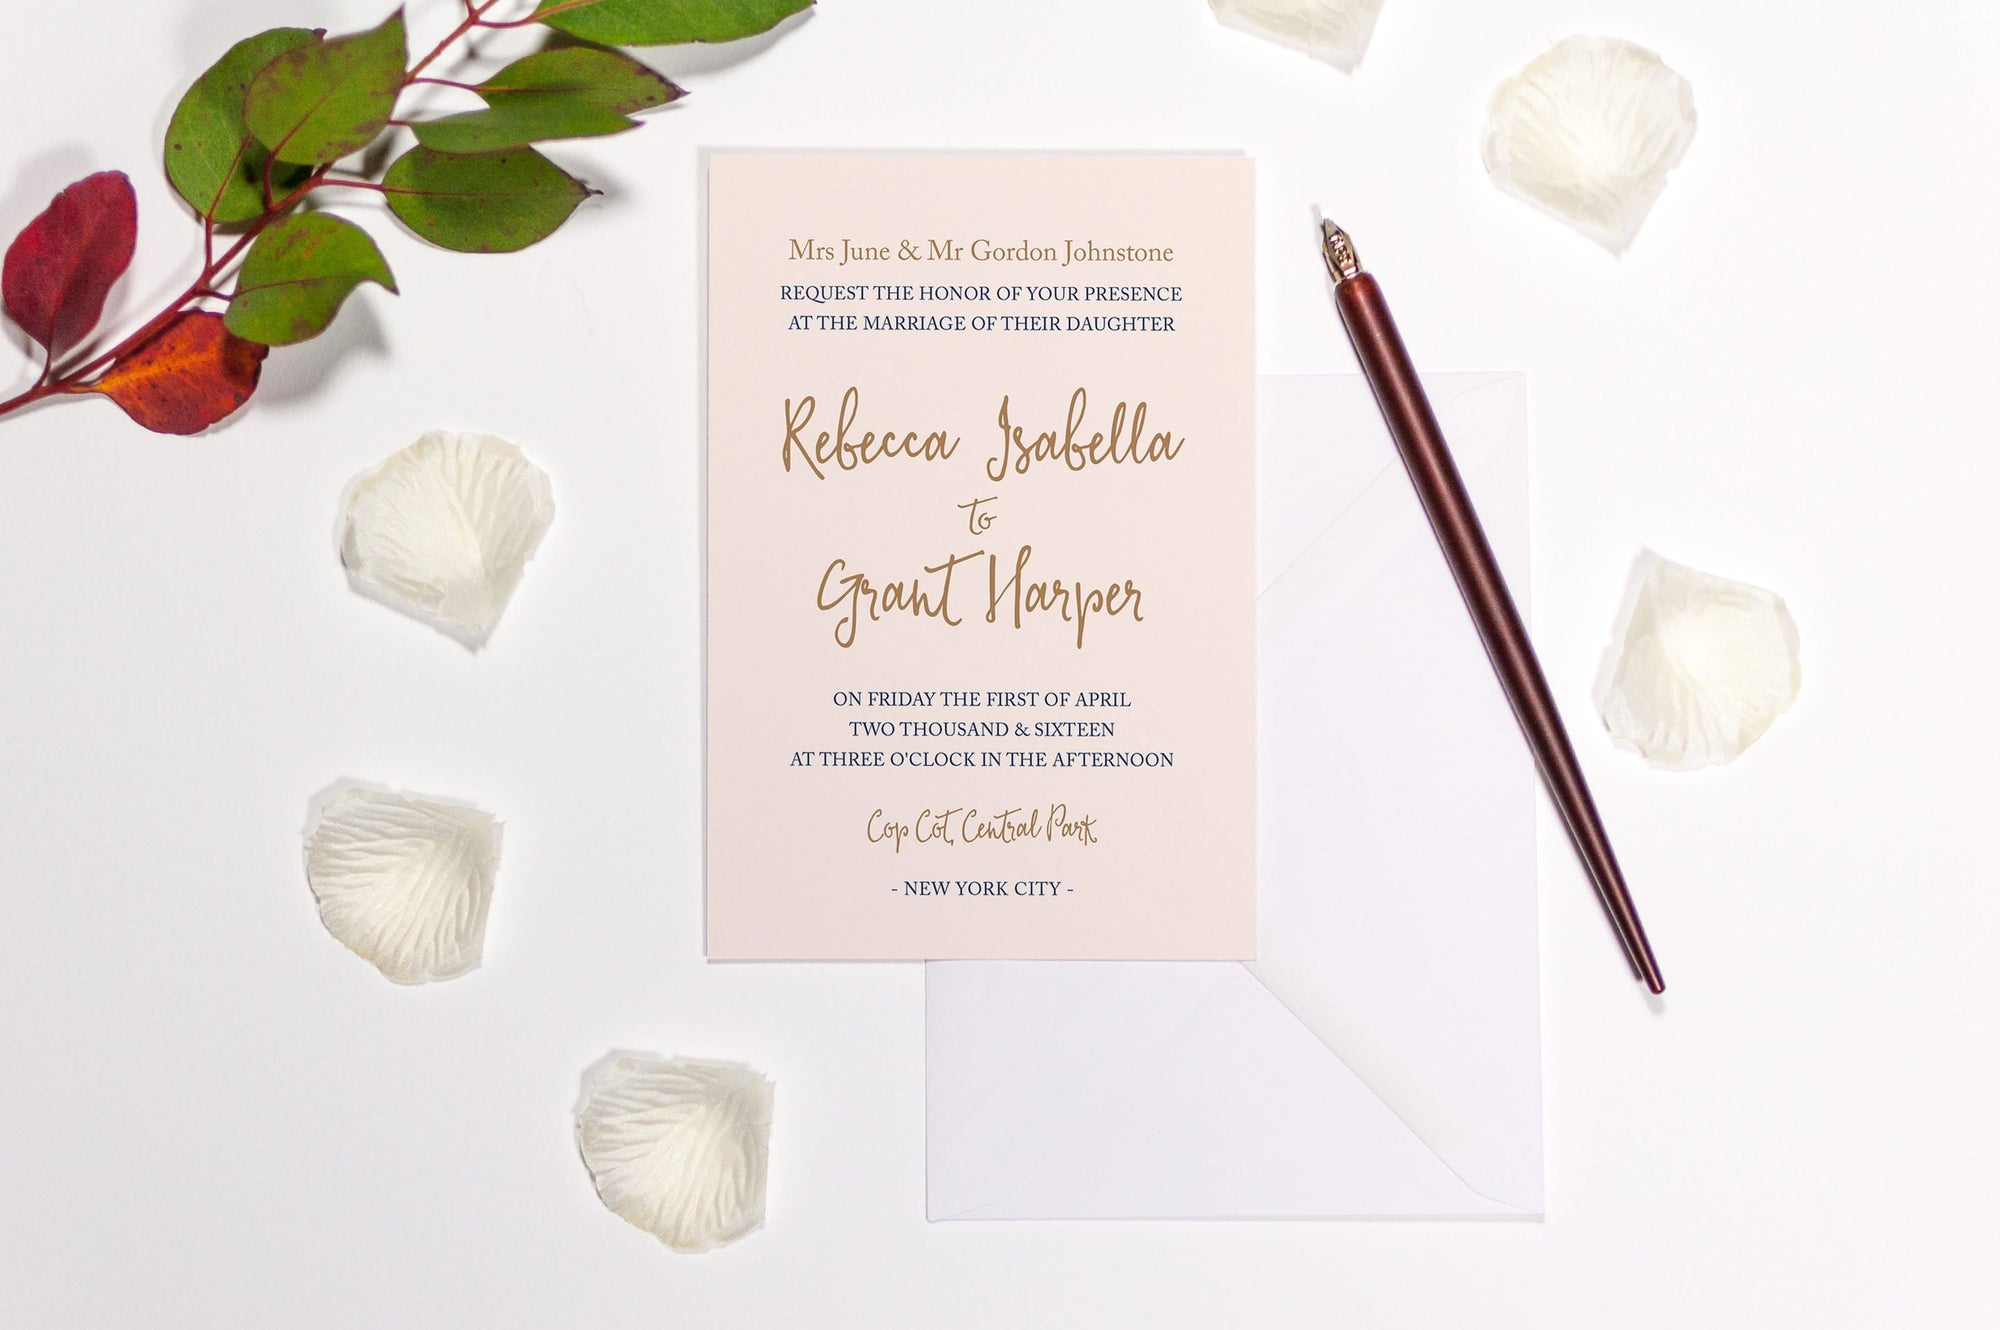 luxuryweddinginvitationsbycombossa HD Printed Wedding Invitations Sample Invitation £1.60 (Colour as shown) / As Shown Calligraphy Wedding Invitation, Sample